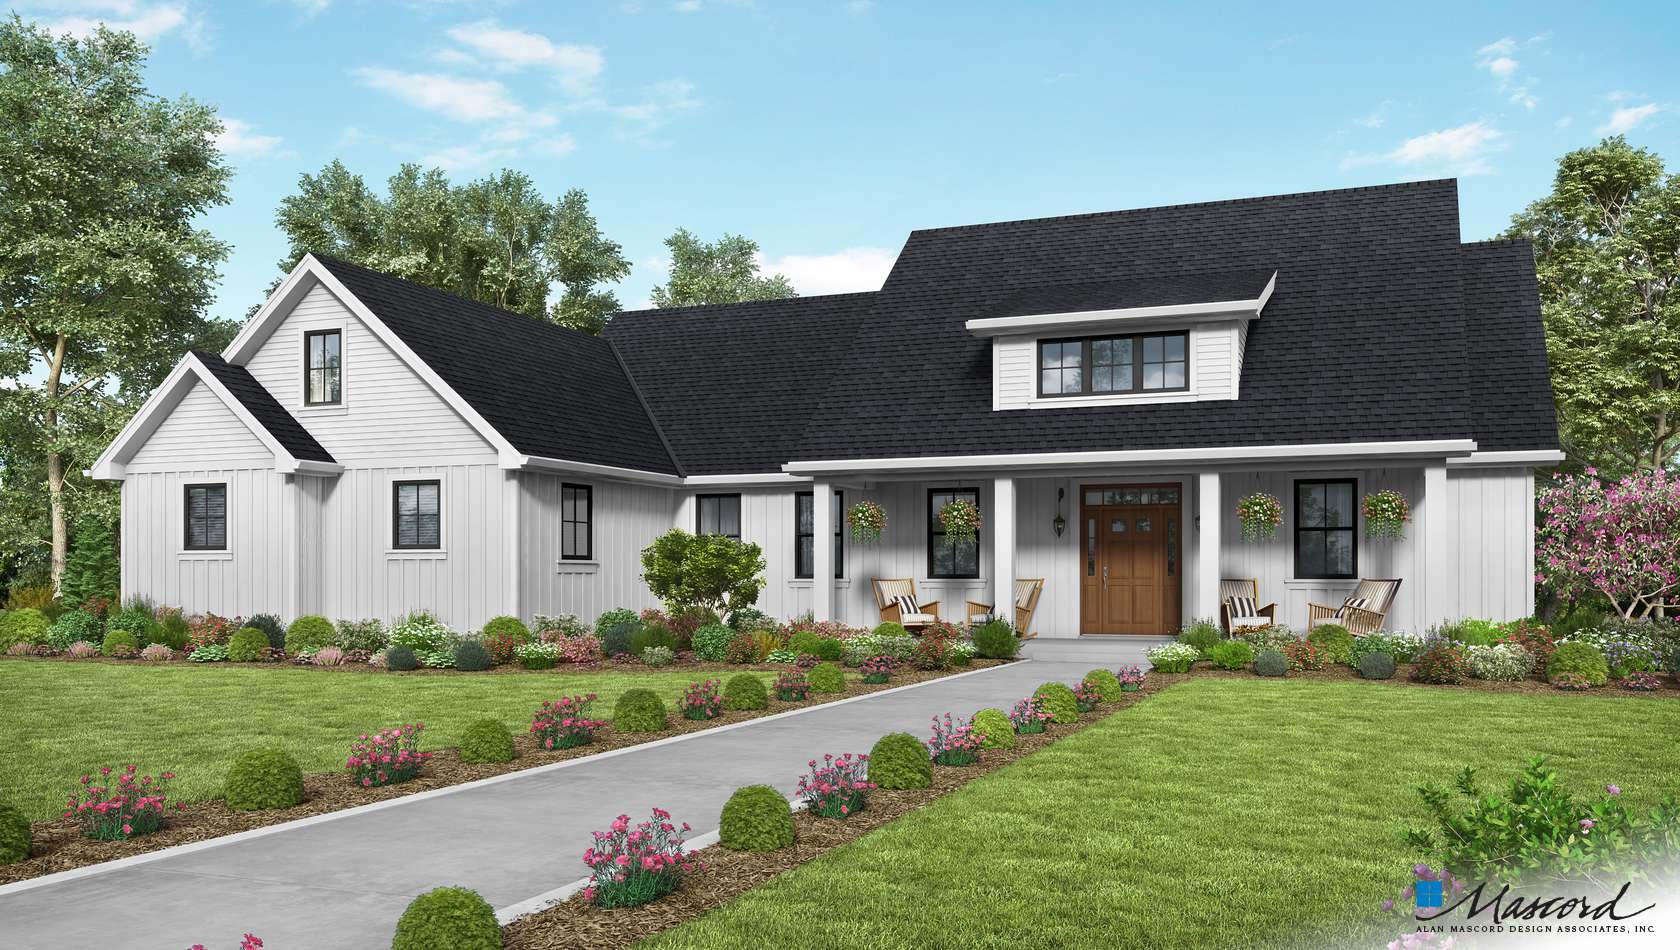 Main image for house plan 21151A: The Cary